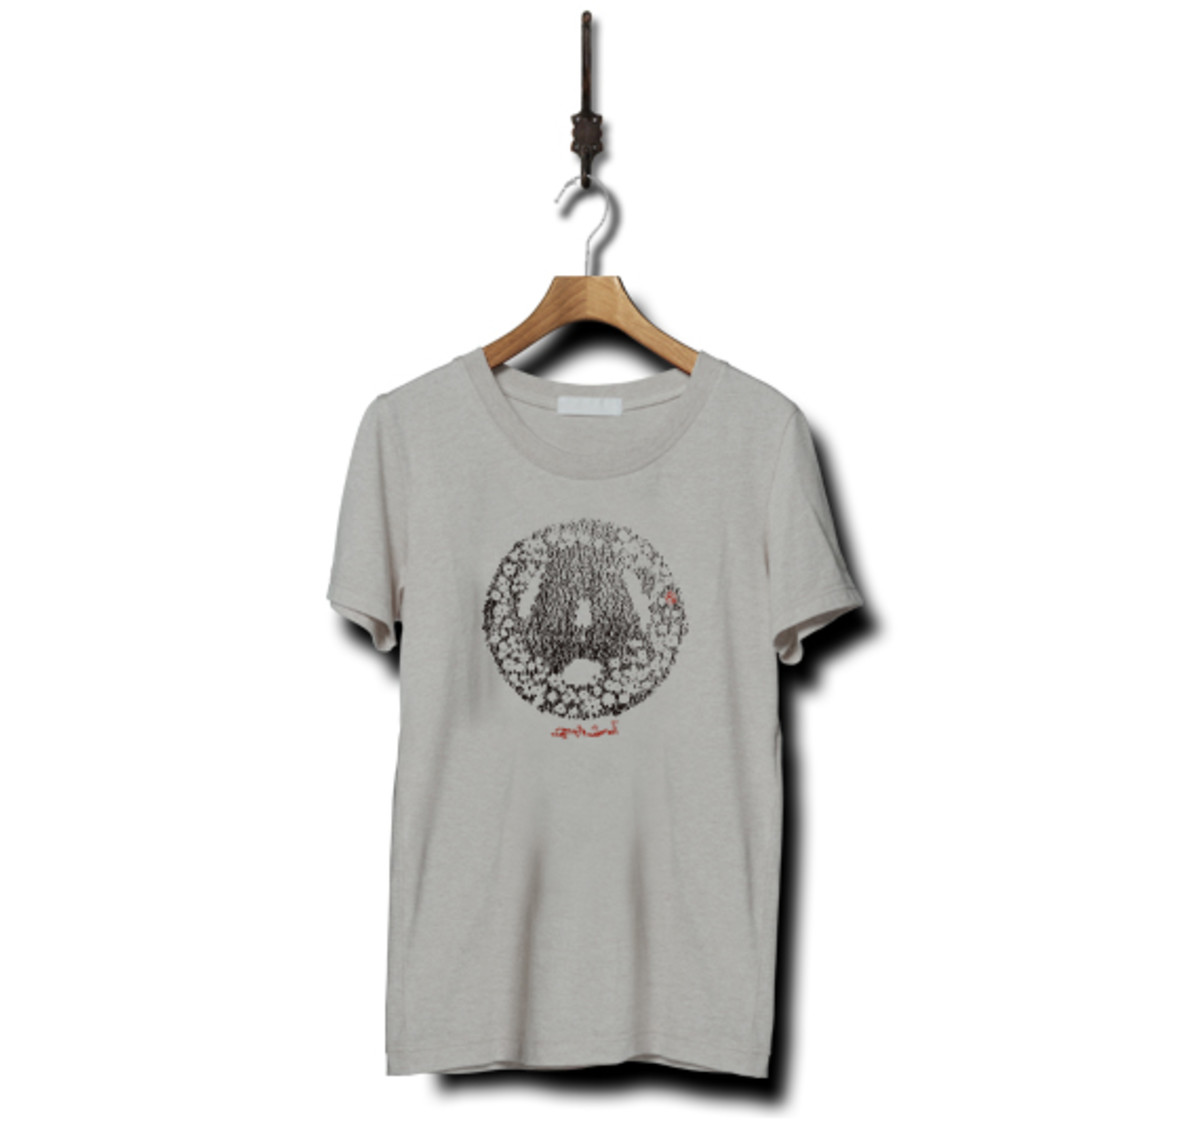 undercover-revival-tee-project-11